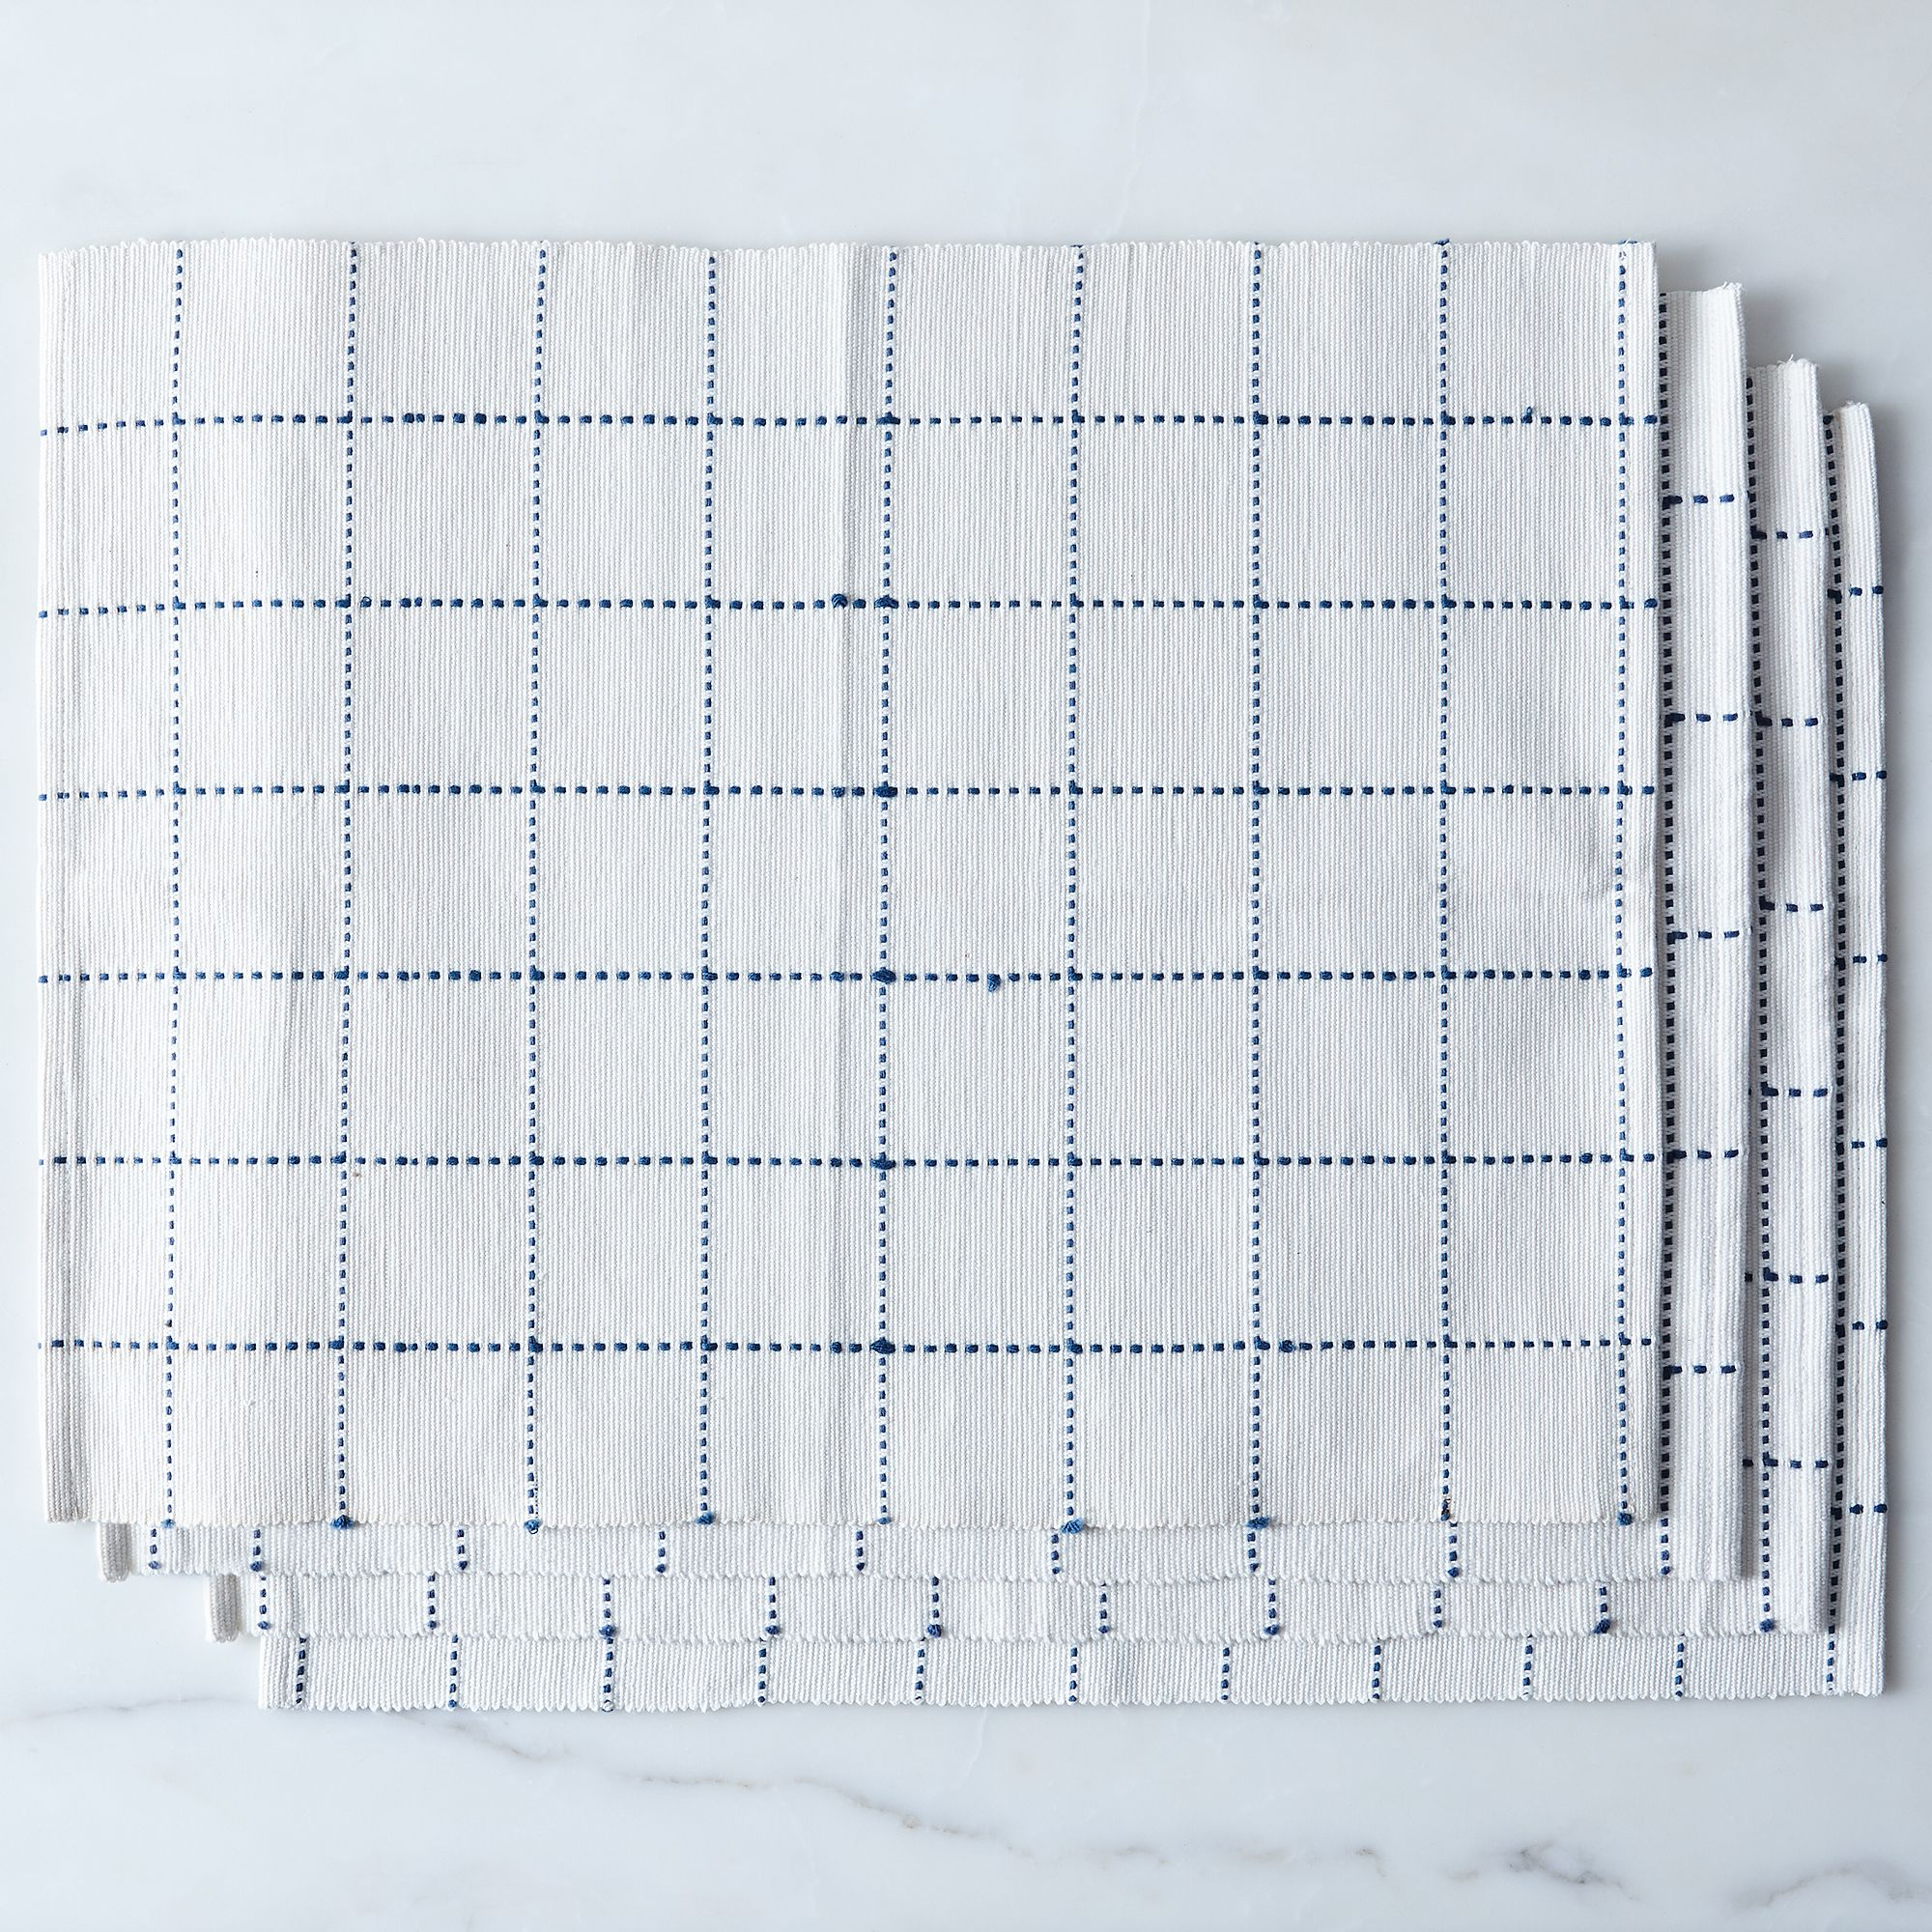 8a05c92b 31d6 48c3 a393 d0b2db53762f  2016 1111 food52 table linens windowpane placemats set of 4 silo rocky luten 0111